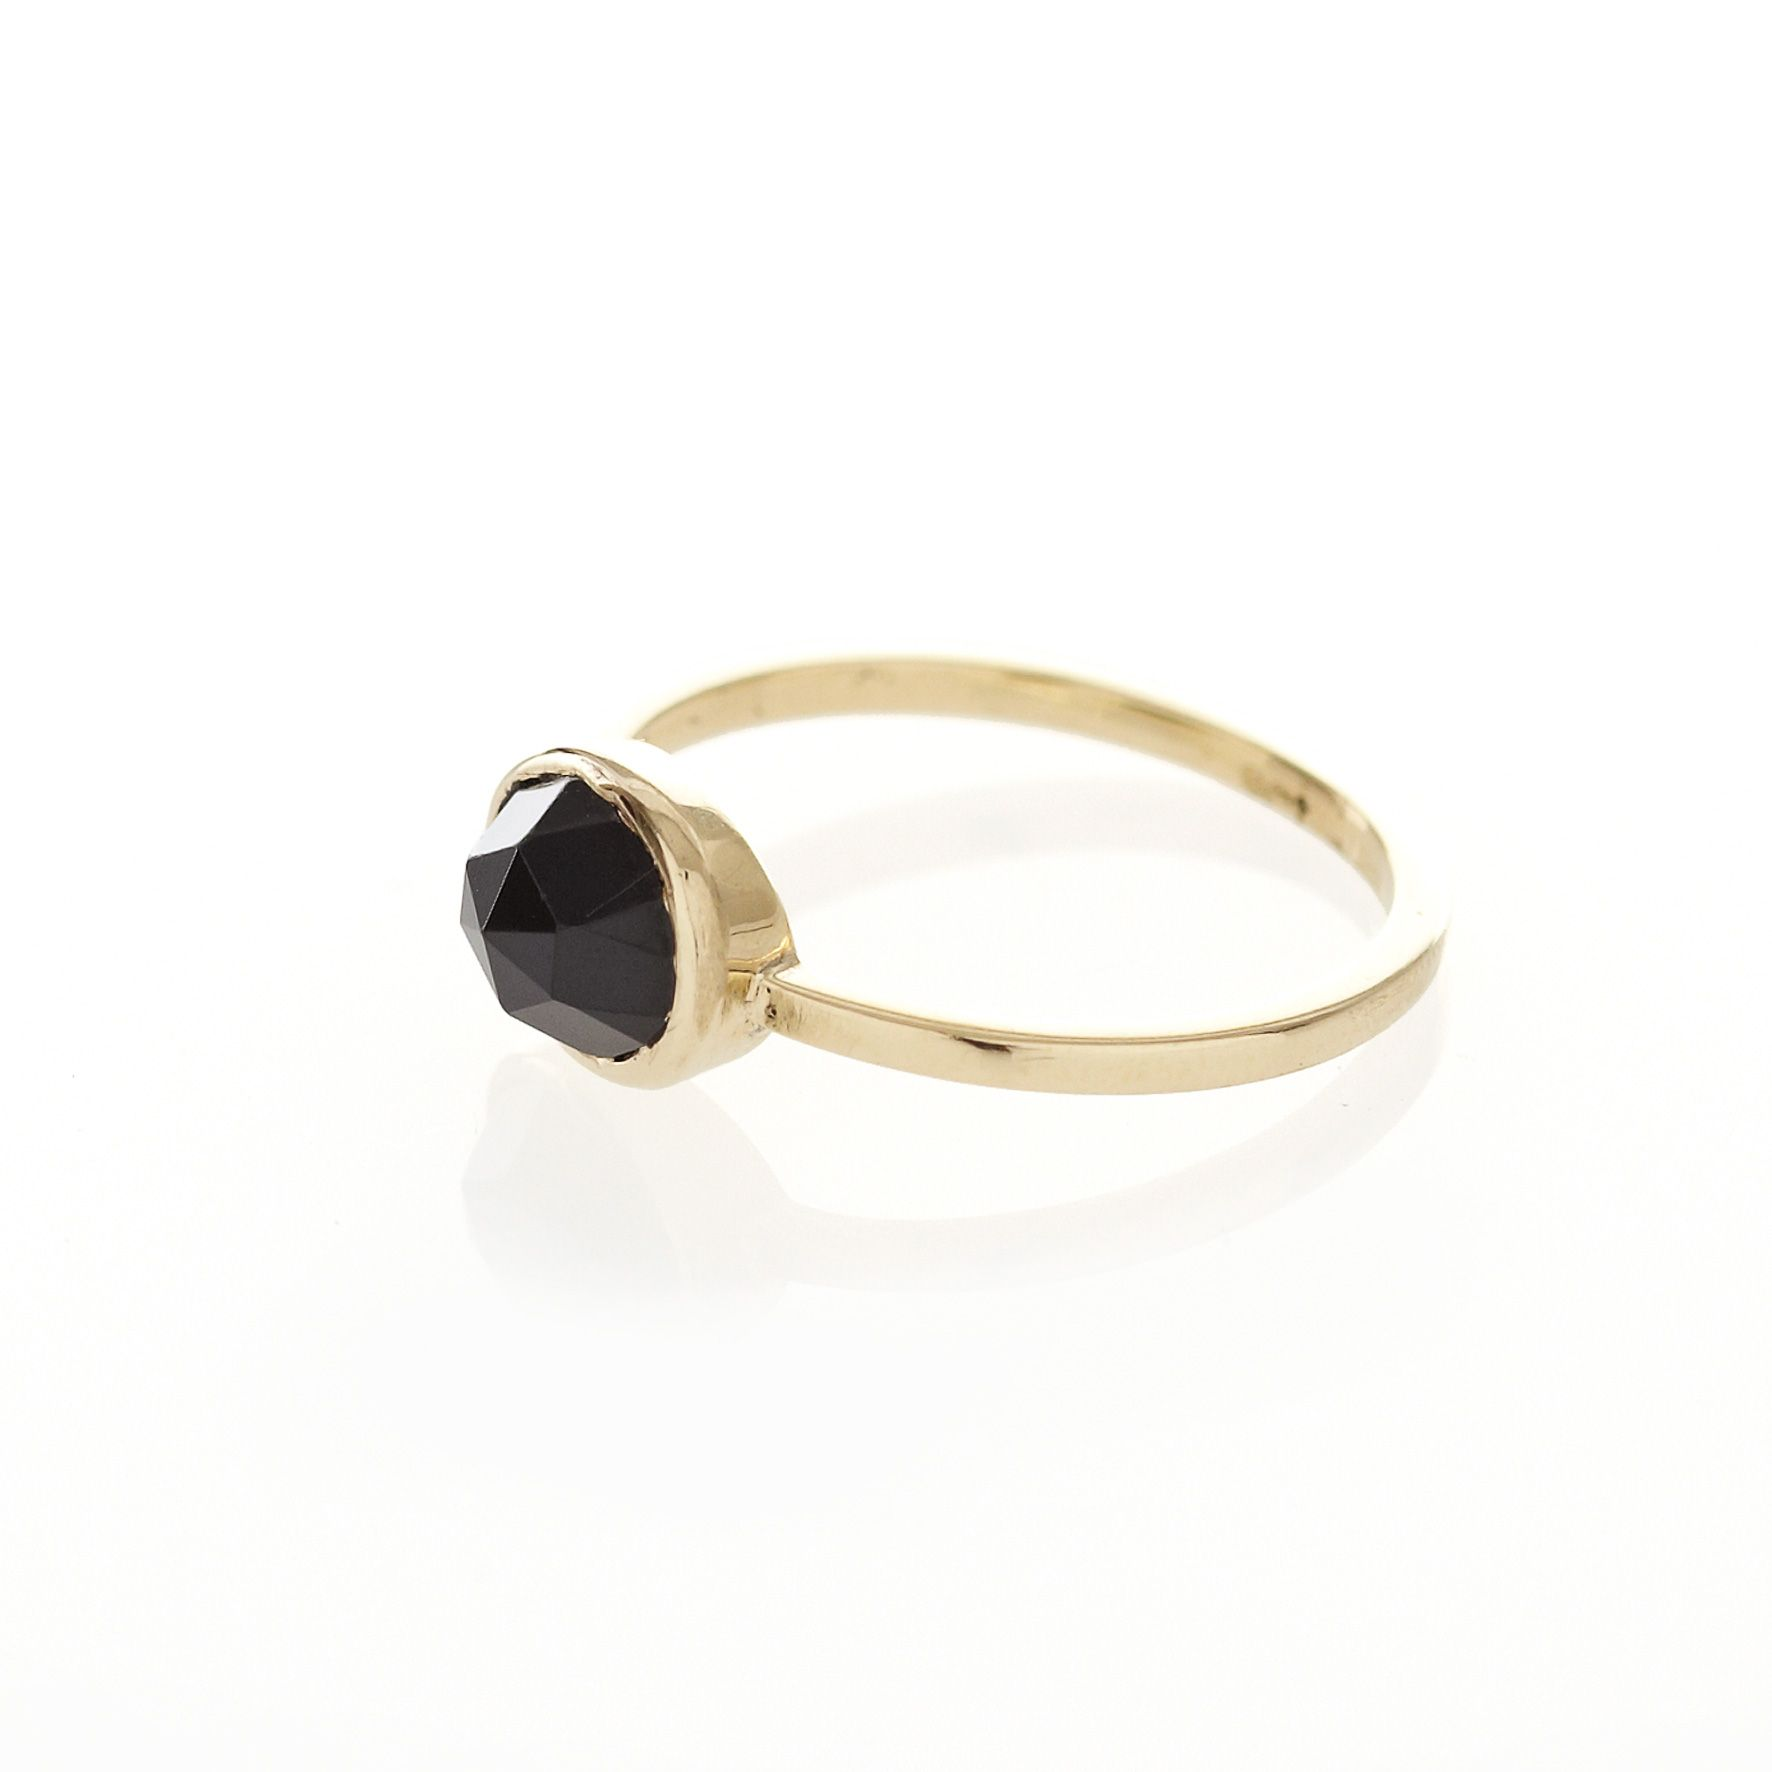 A 9ct Yellow Gold Ring With A Bezel Set 8mm X 6mm Oval Black